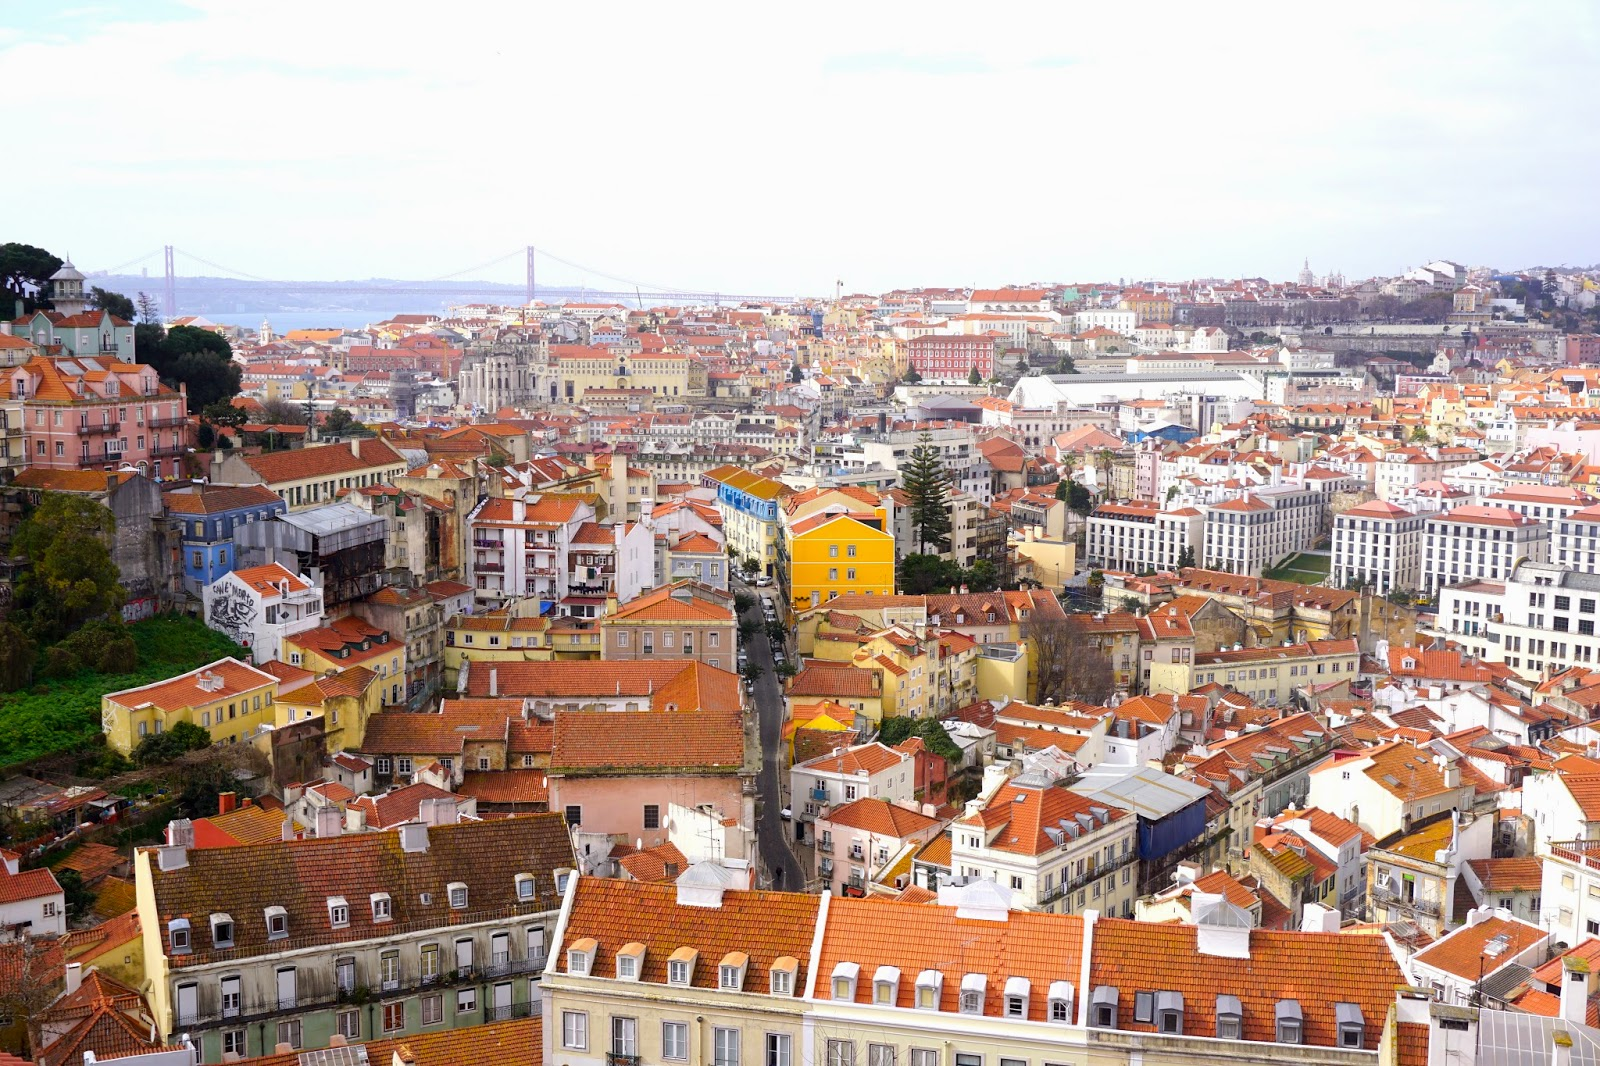 The views over Lisbon from the viewpoint Miradouro Da Graca